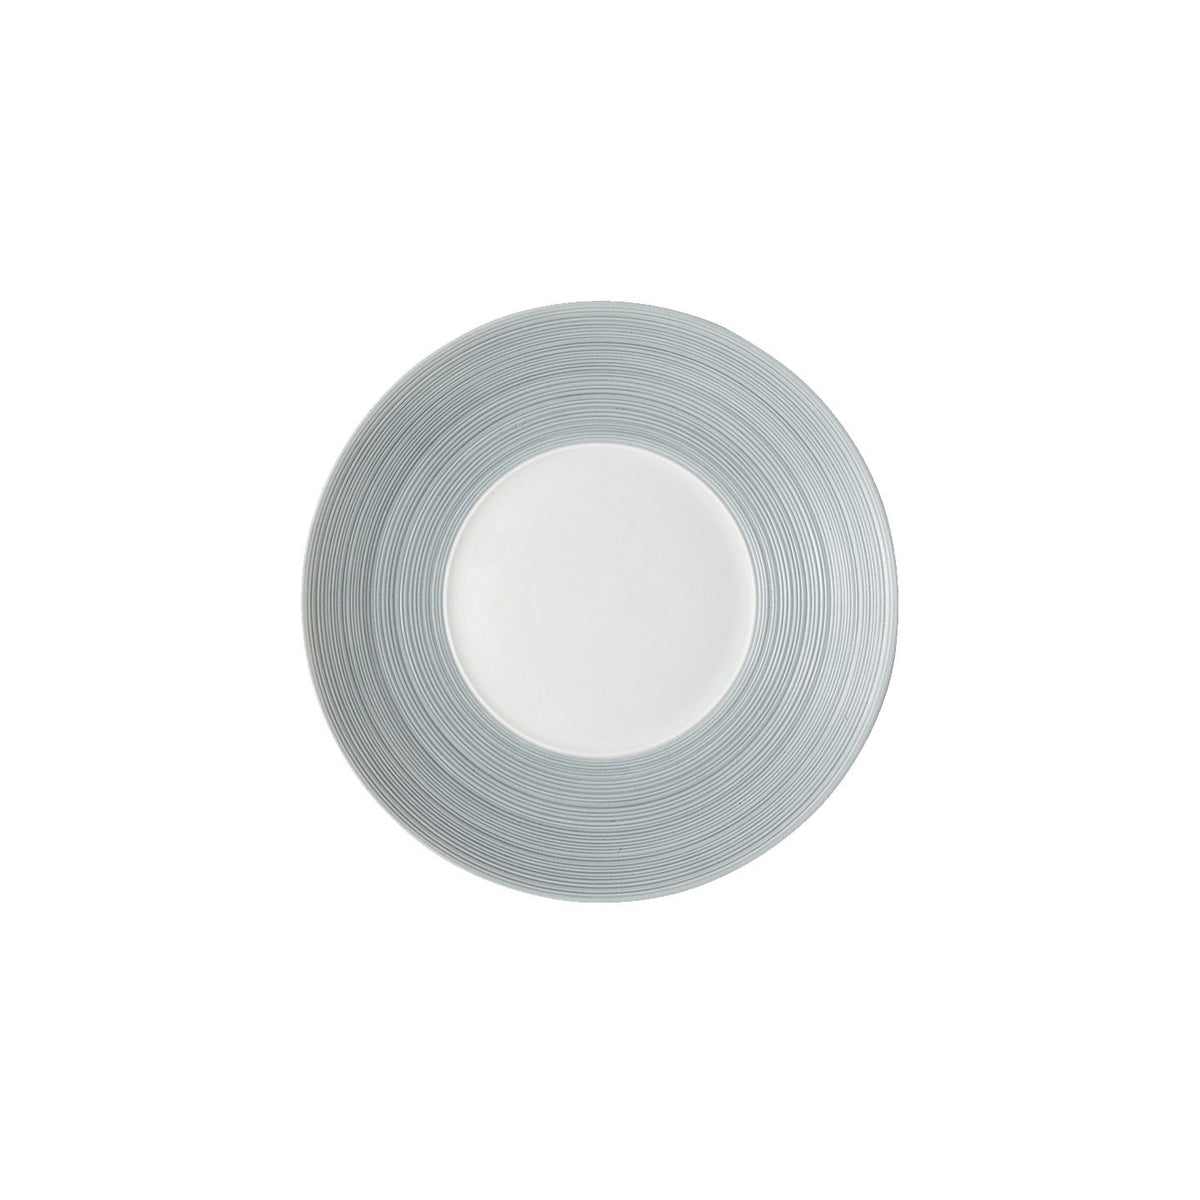 Hemisphere Storm Blue Porcelain Bread and Butter Plate